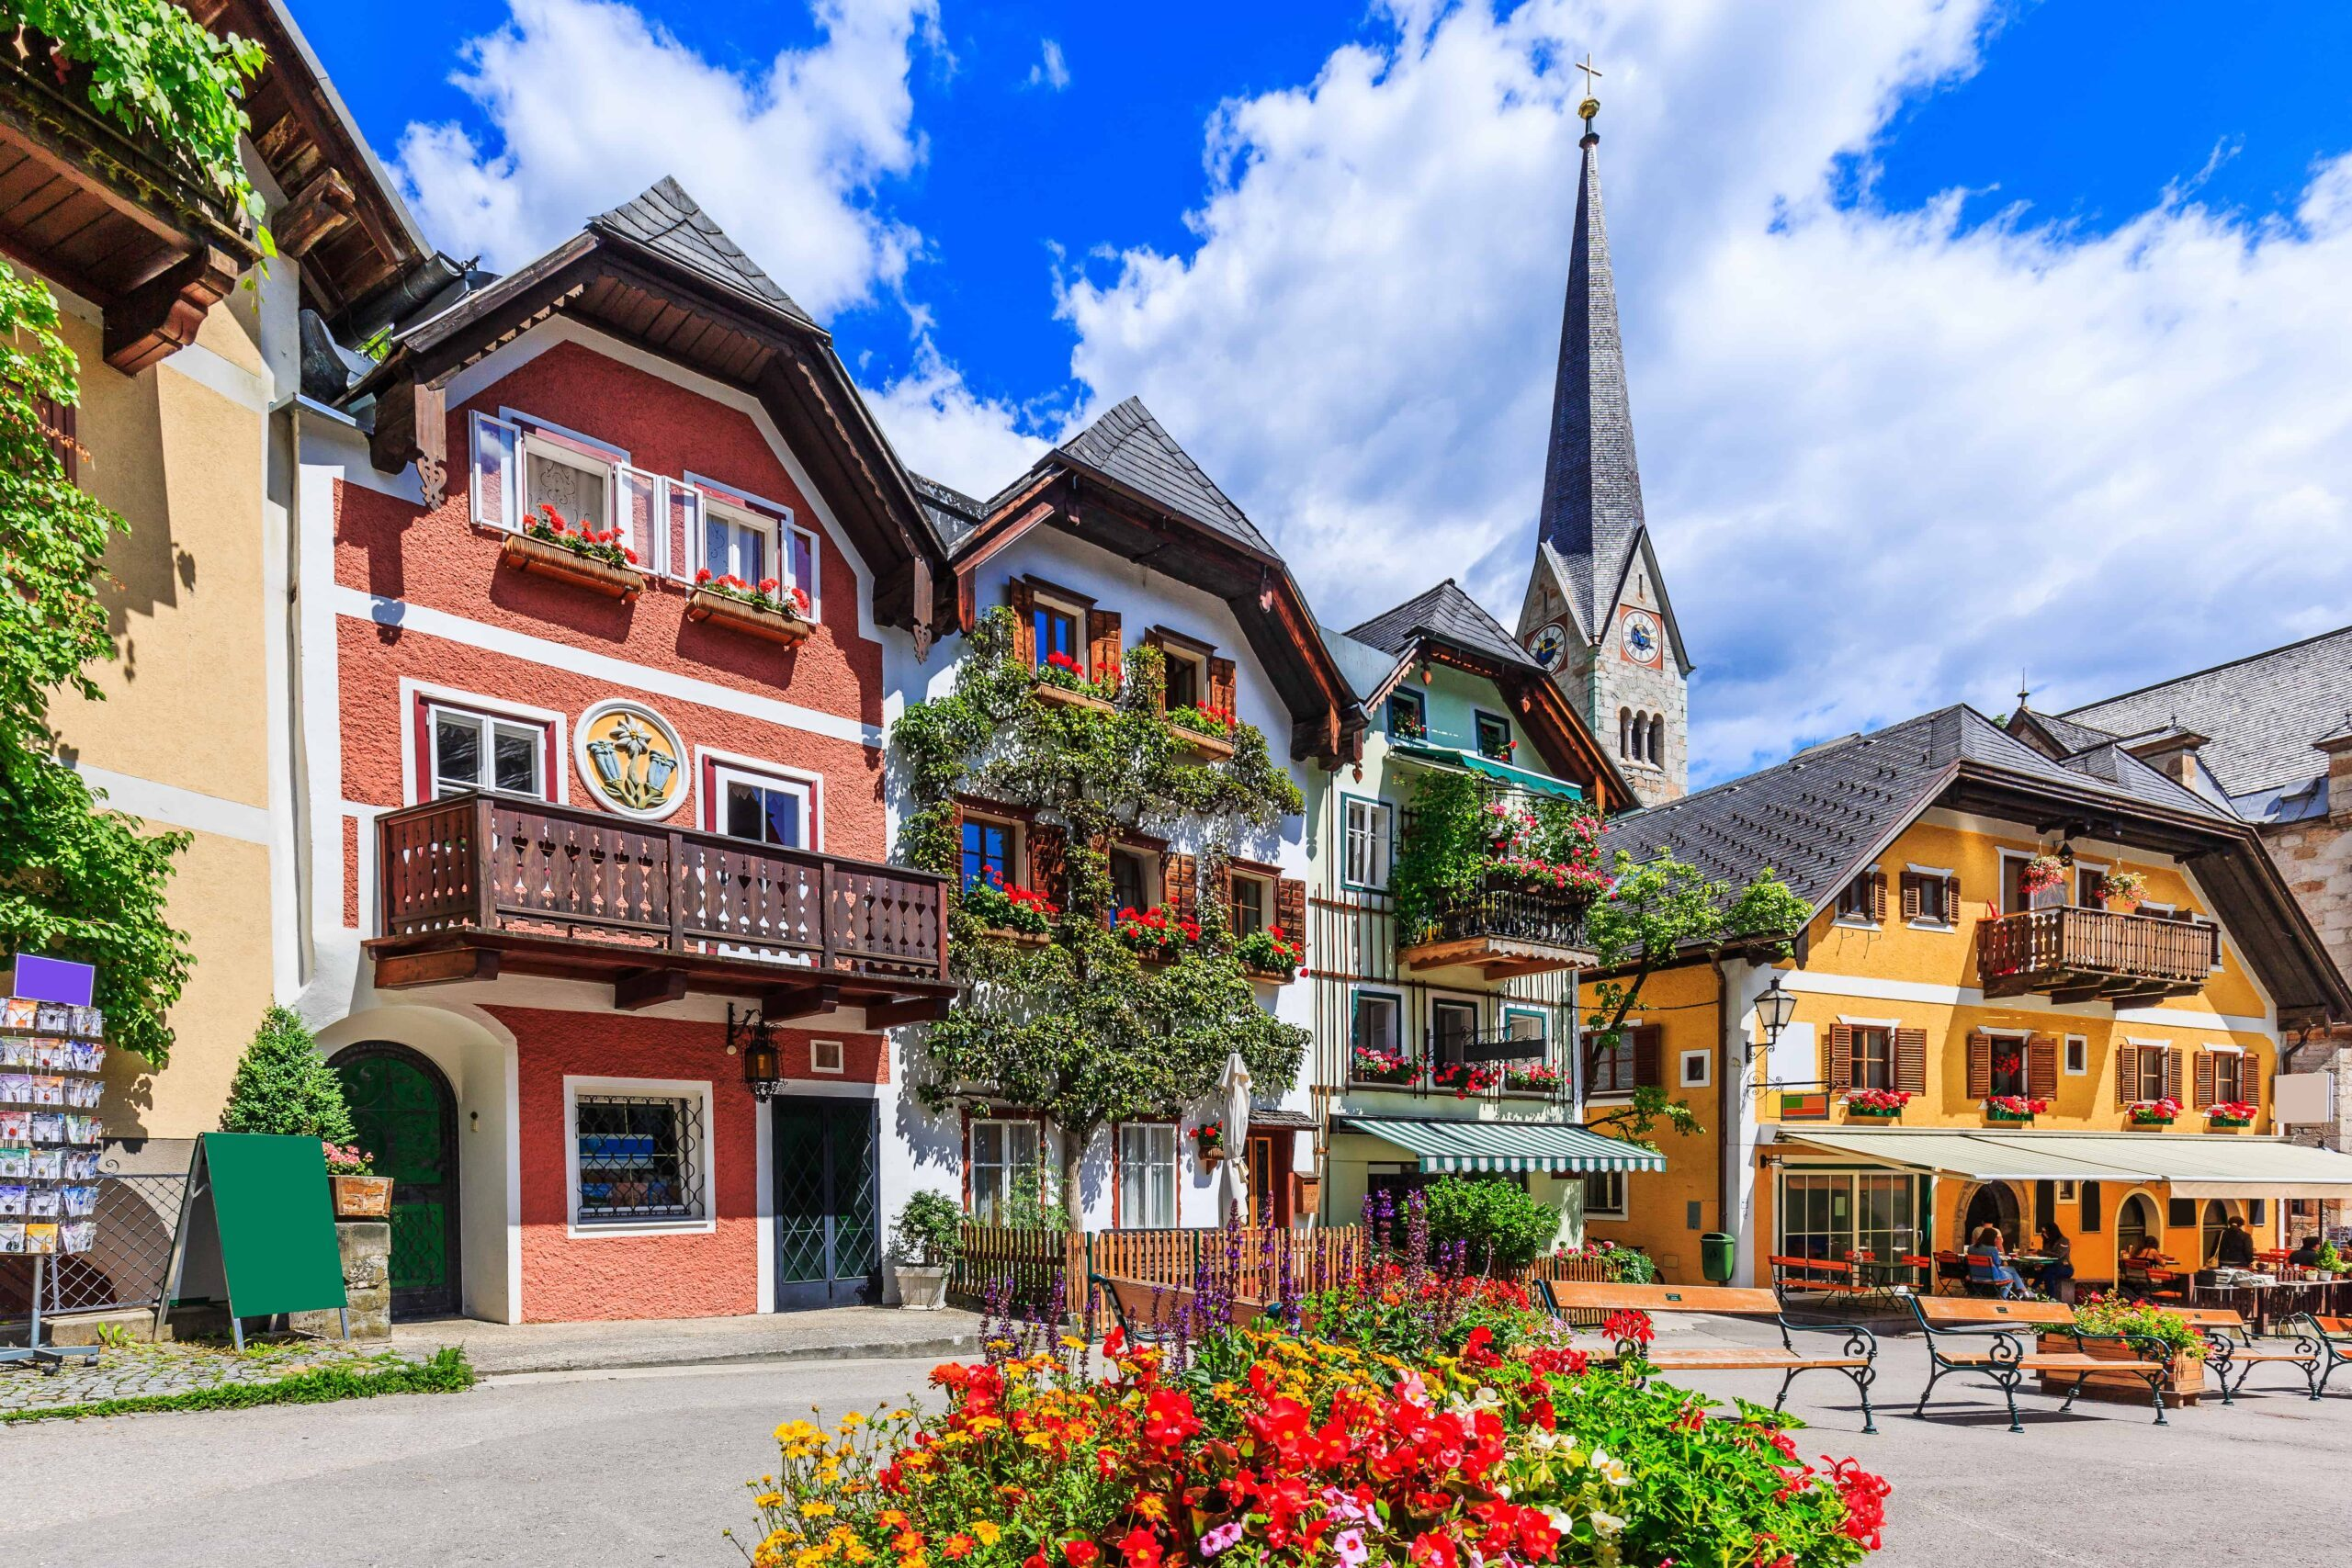 Picture of Old Town Austria with Blue Skies